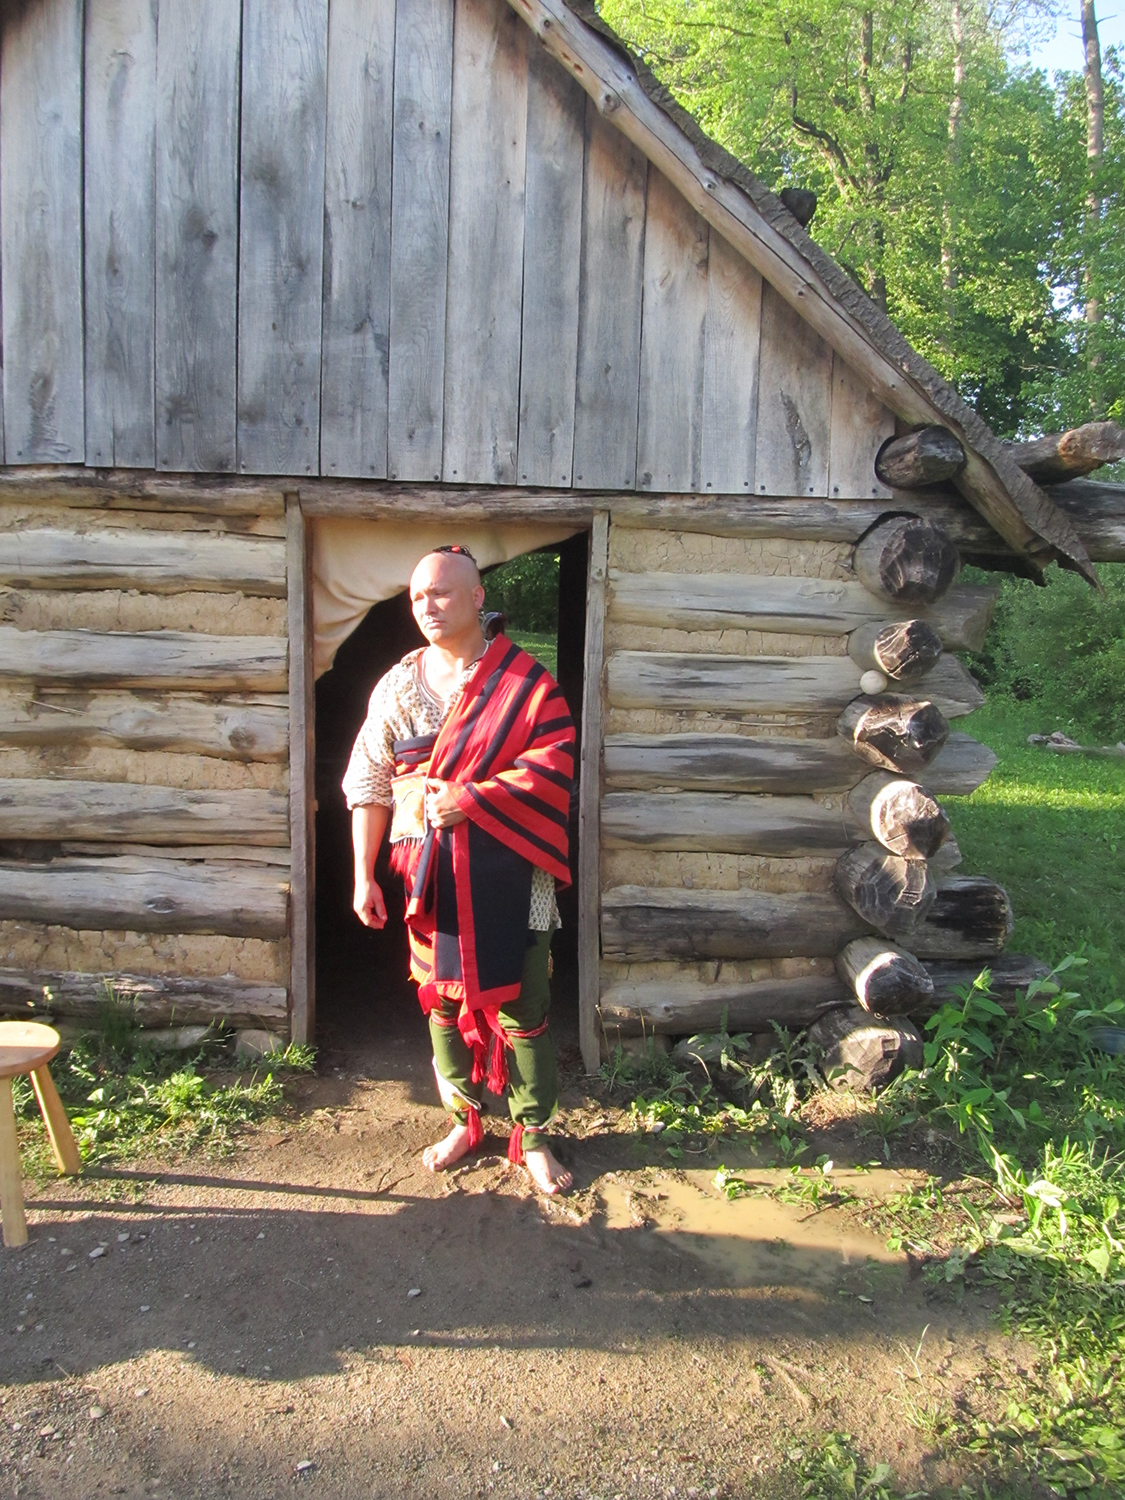 The Frontier Trading Post cabin at Meadowcroft Rockshelter and Historic Village is modeled after Smith's description.